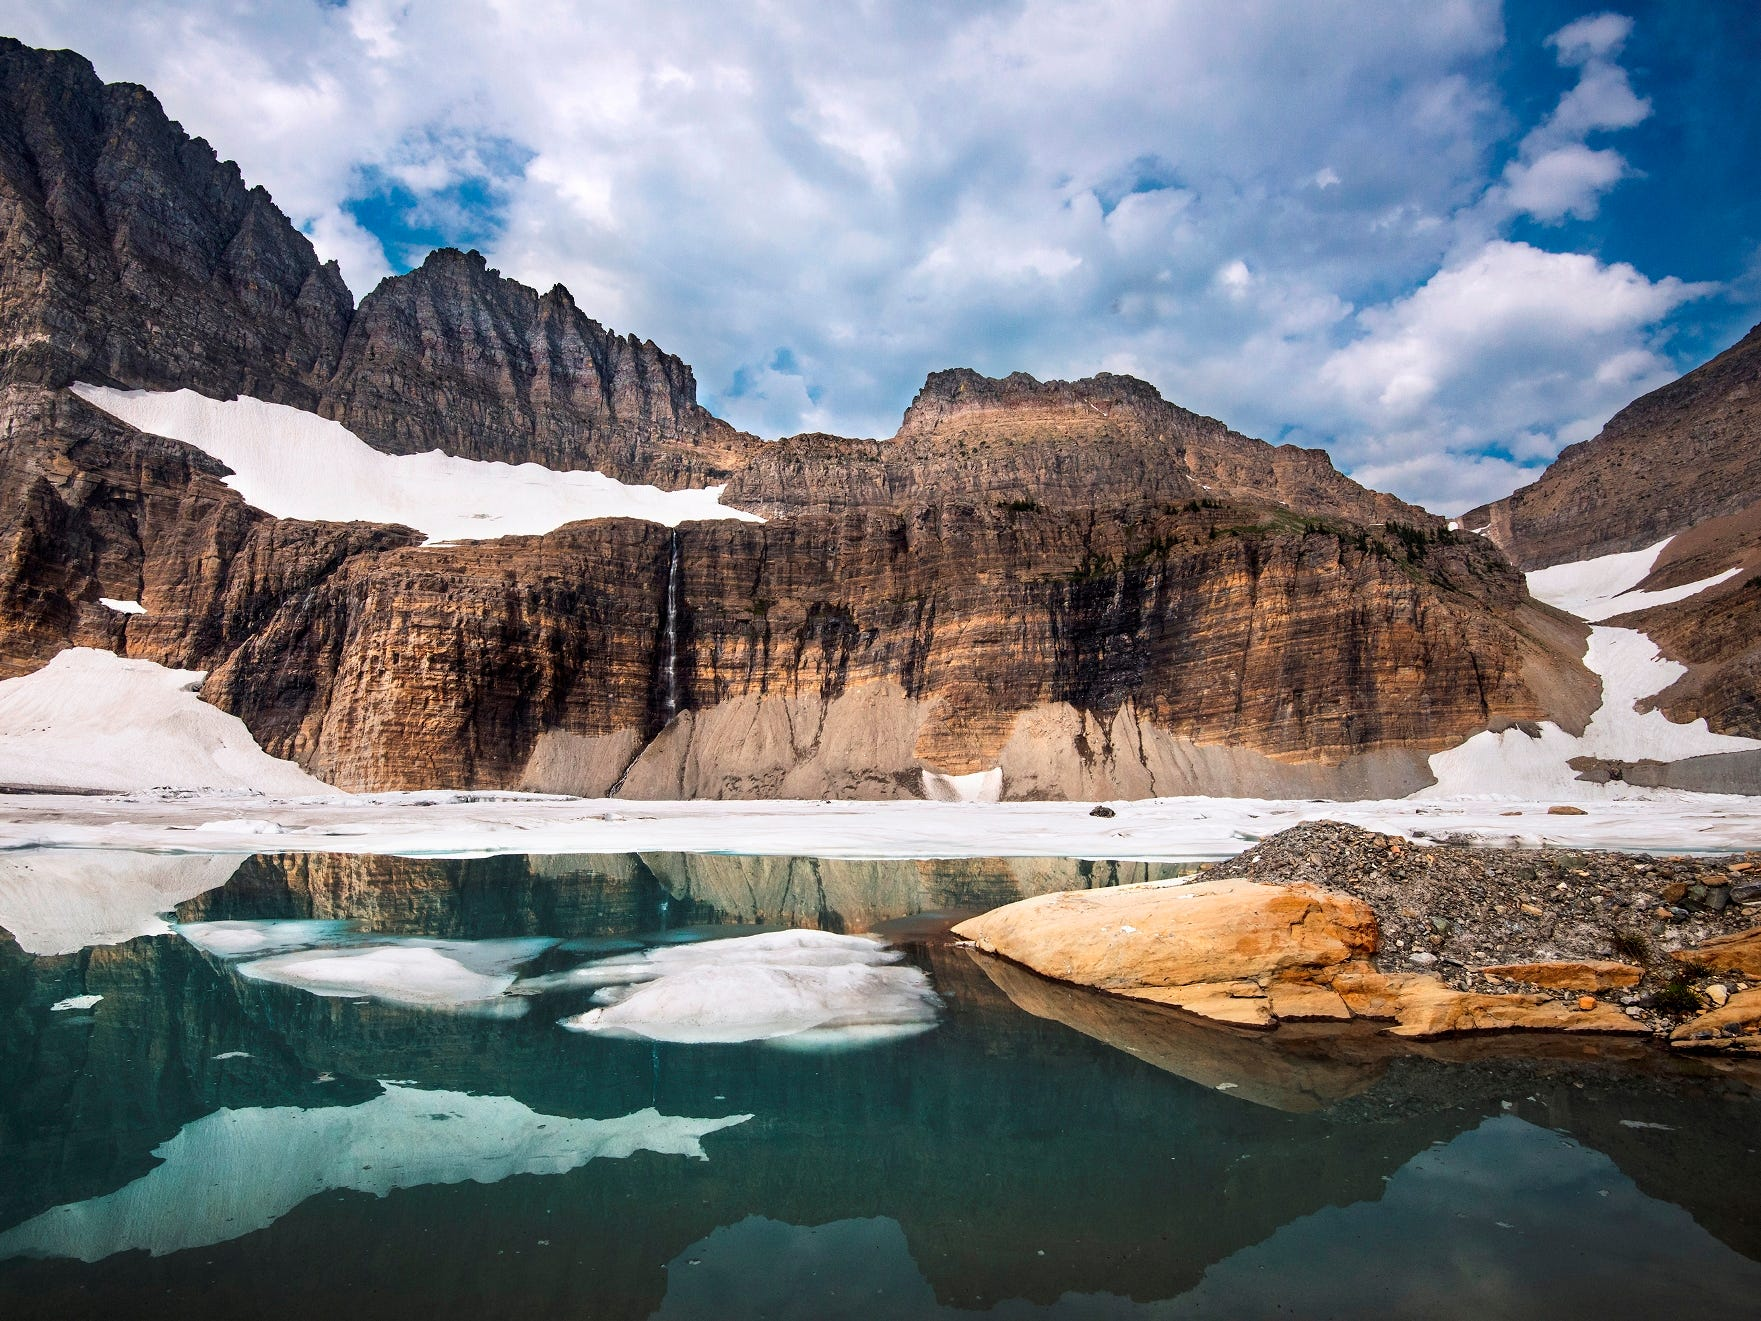 The glaciers of Glacier National Park have been in retreat for many years, peaking in the 19th century at the end of a period called the Little Ice Age.